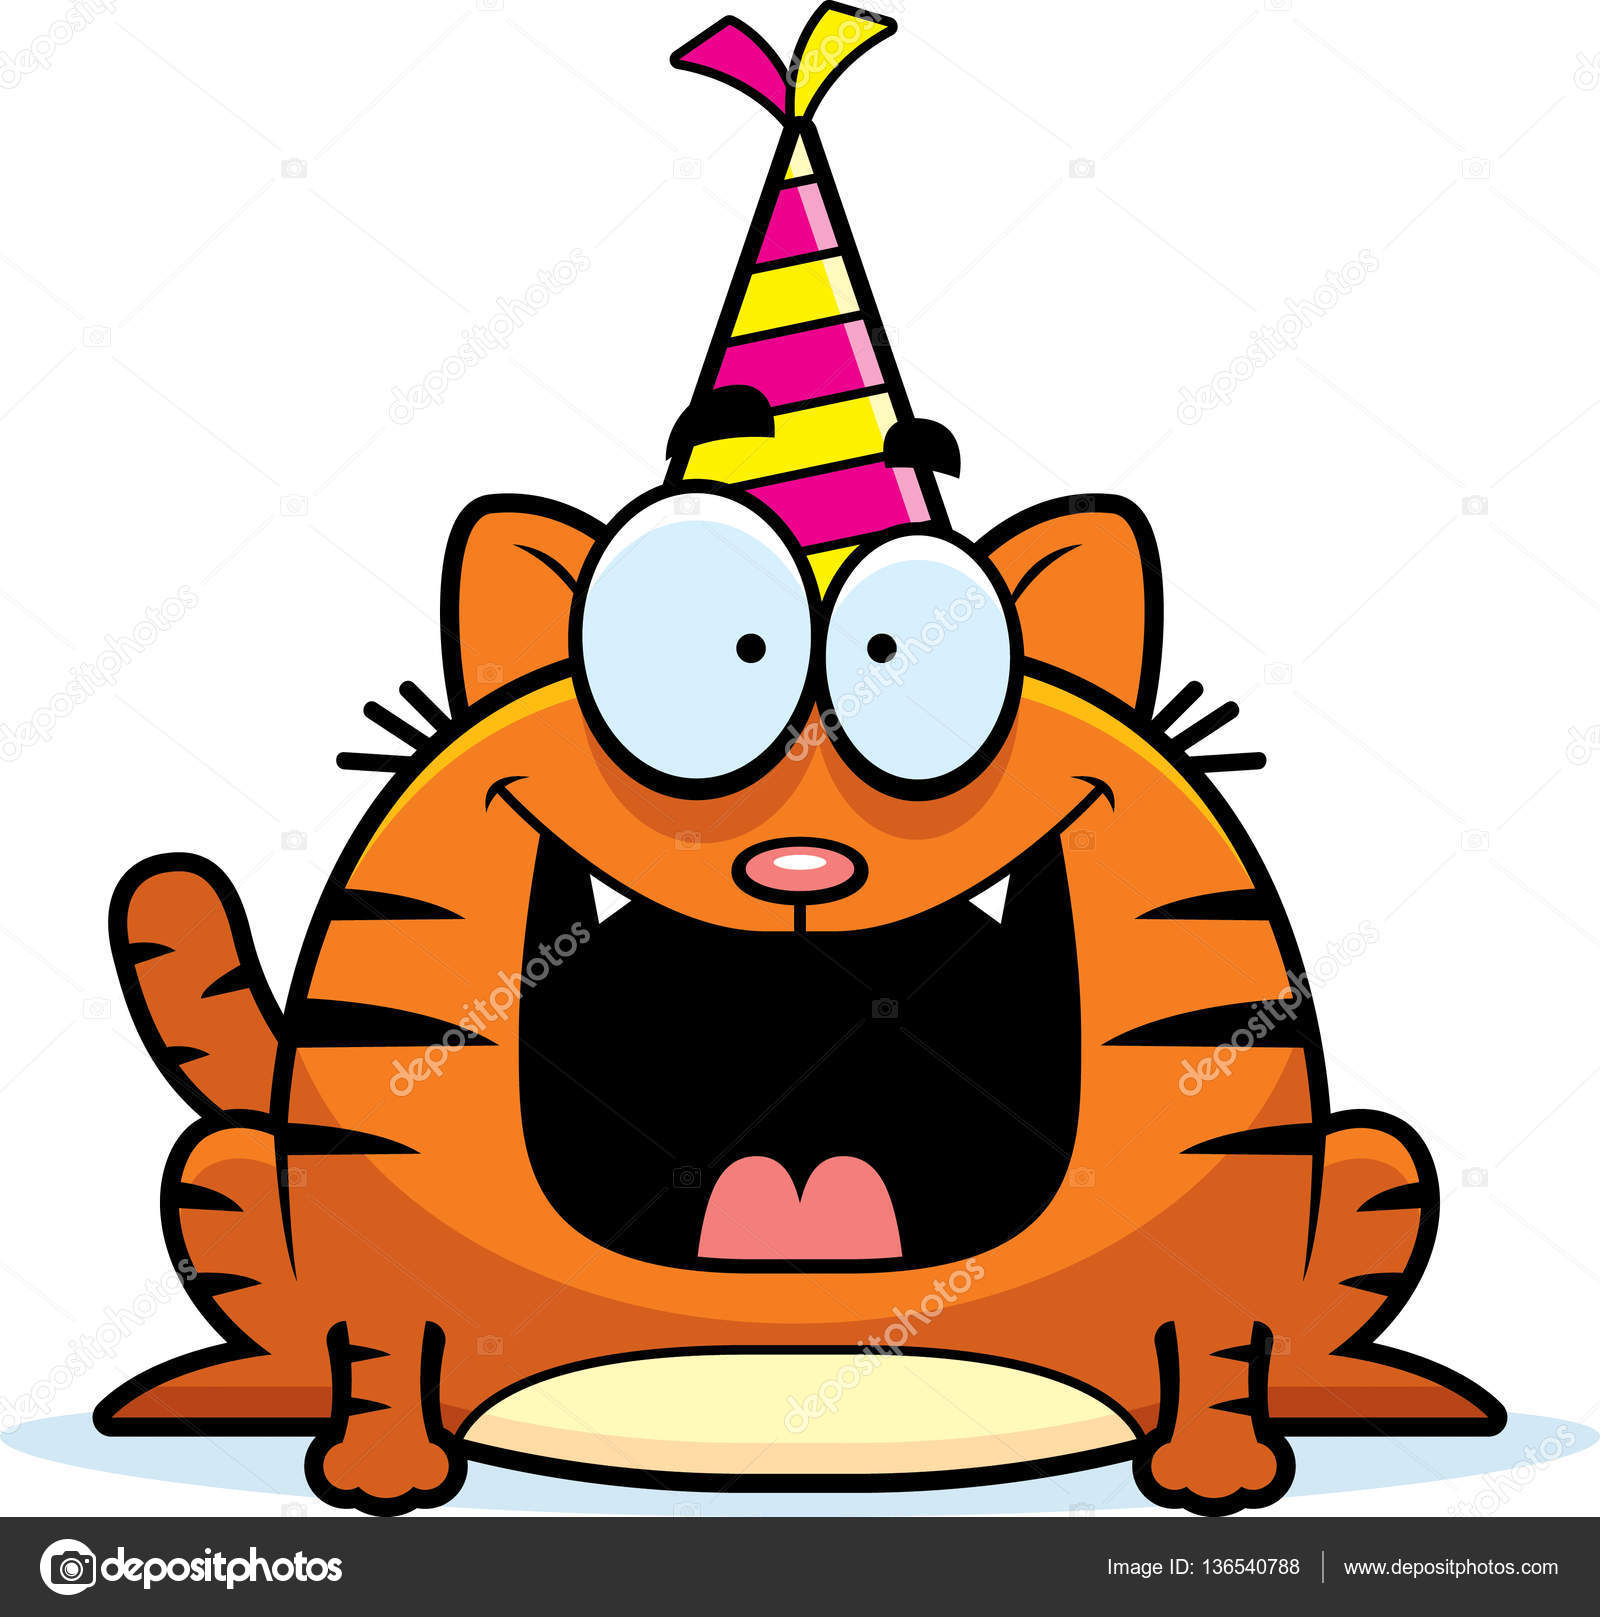 A Cartoon Illustration Of Cat With Party Hat Looking Happy